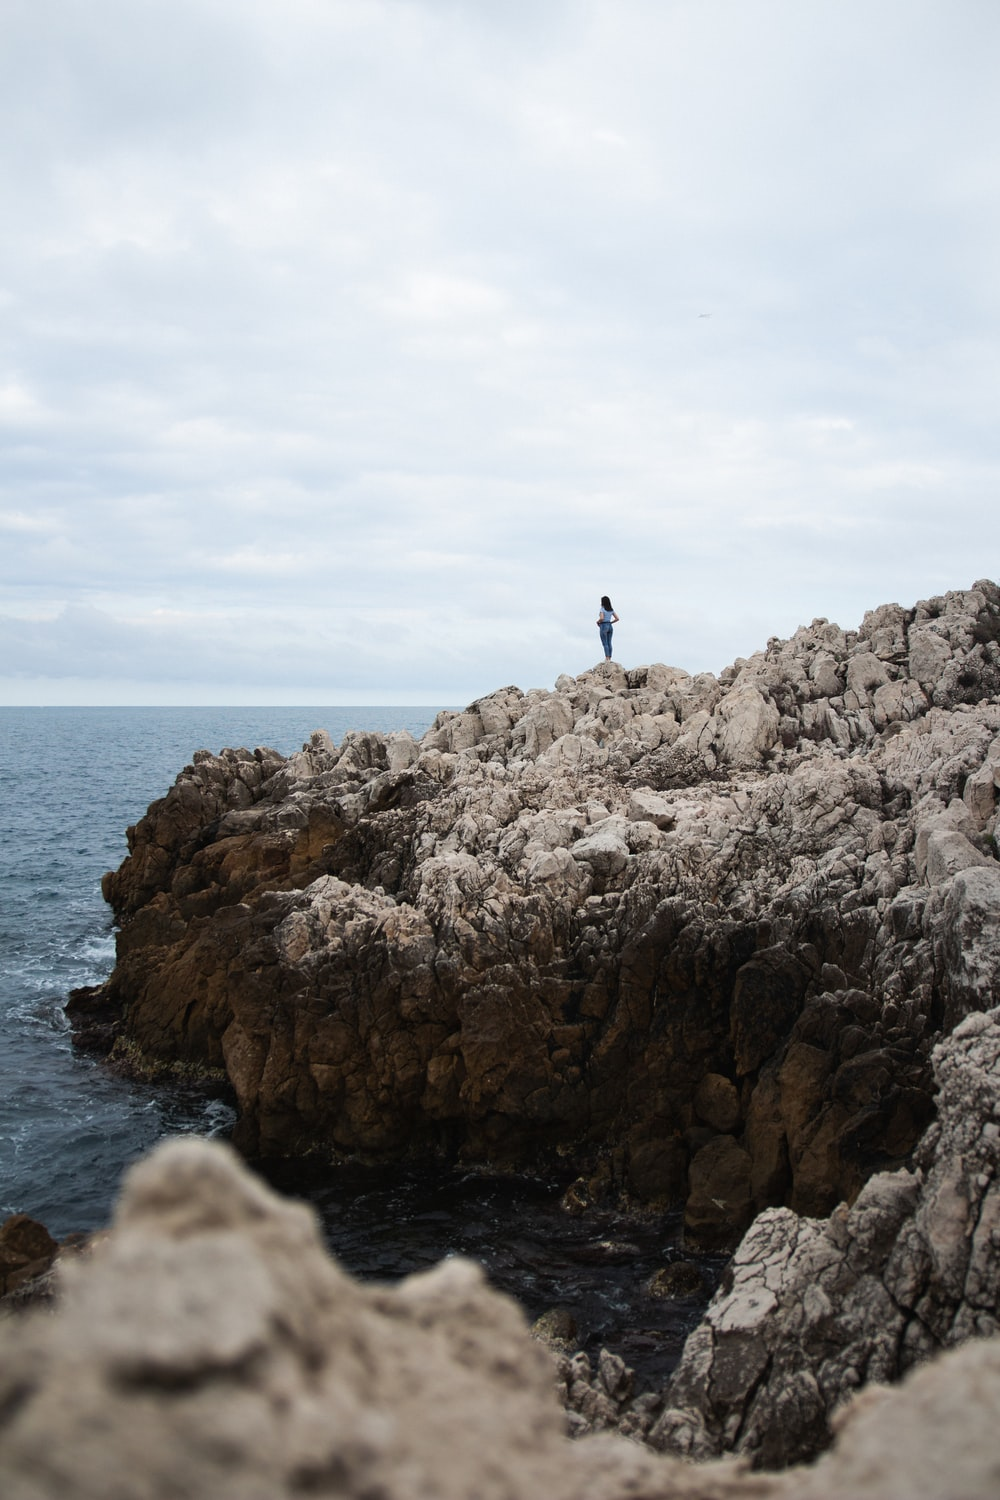 shallow focus photo of person standing on cliff during daytrime